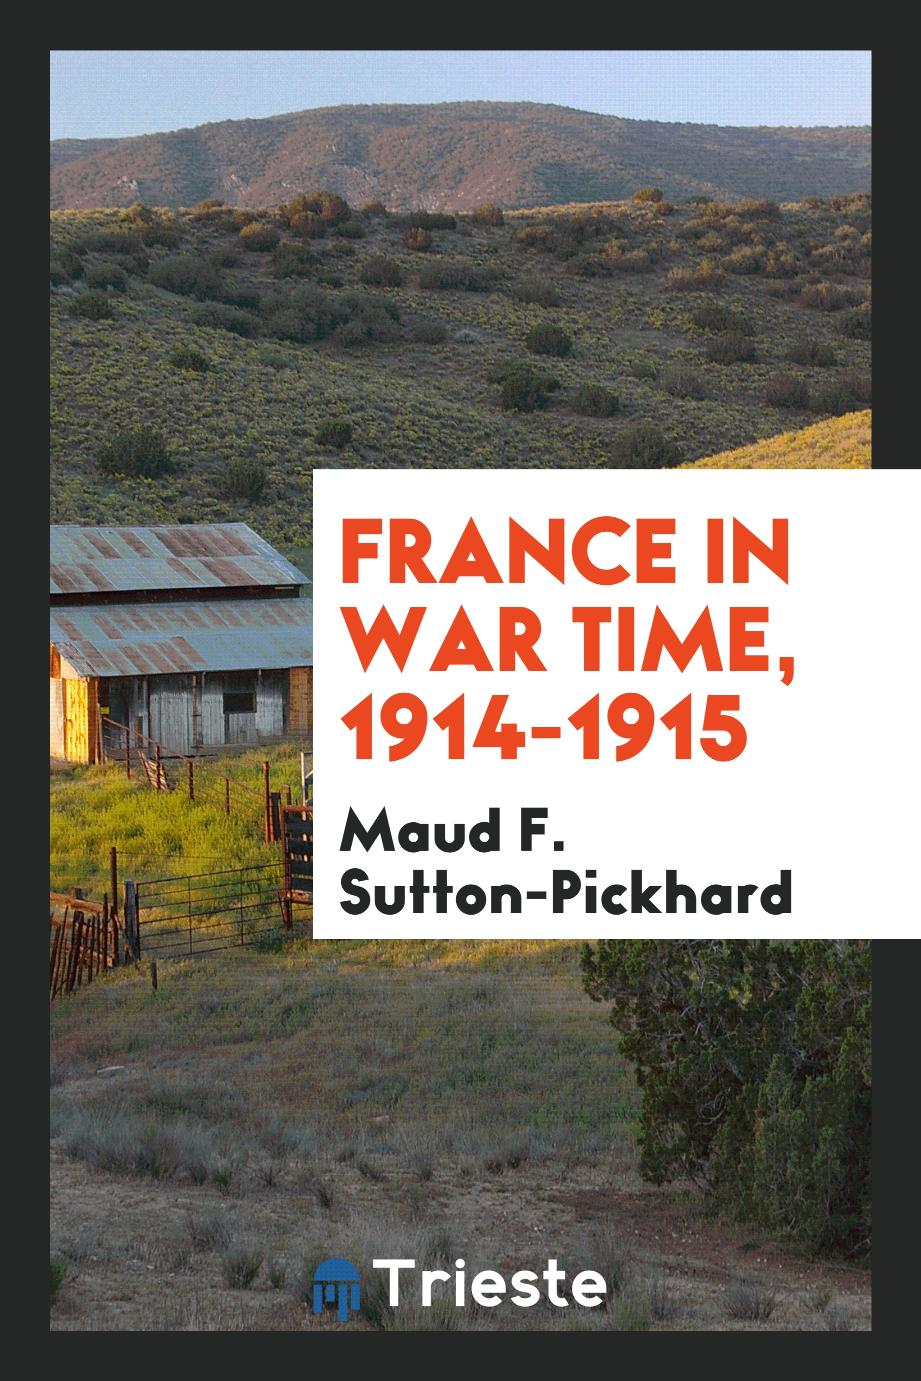 France in war time, 1914-1915